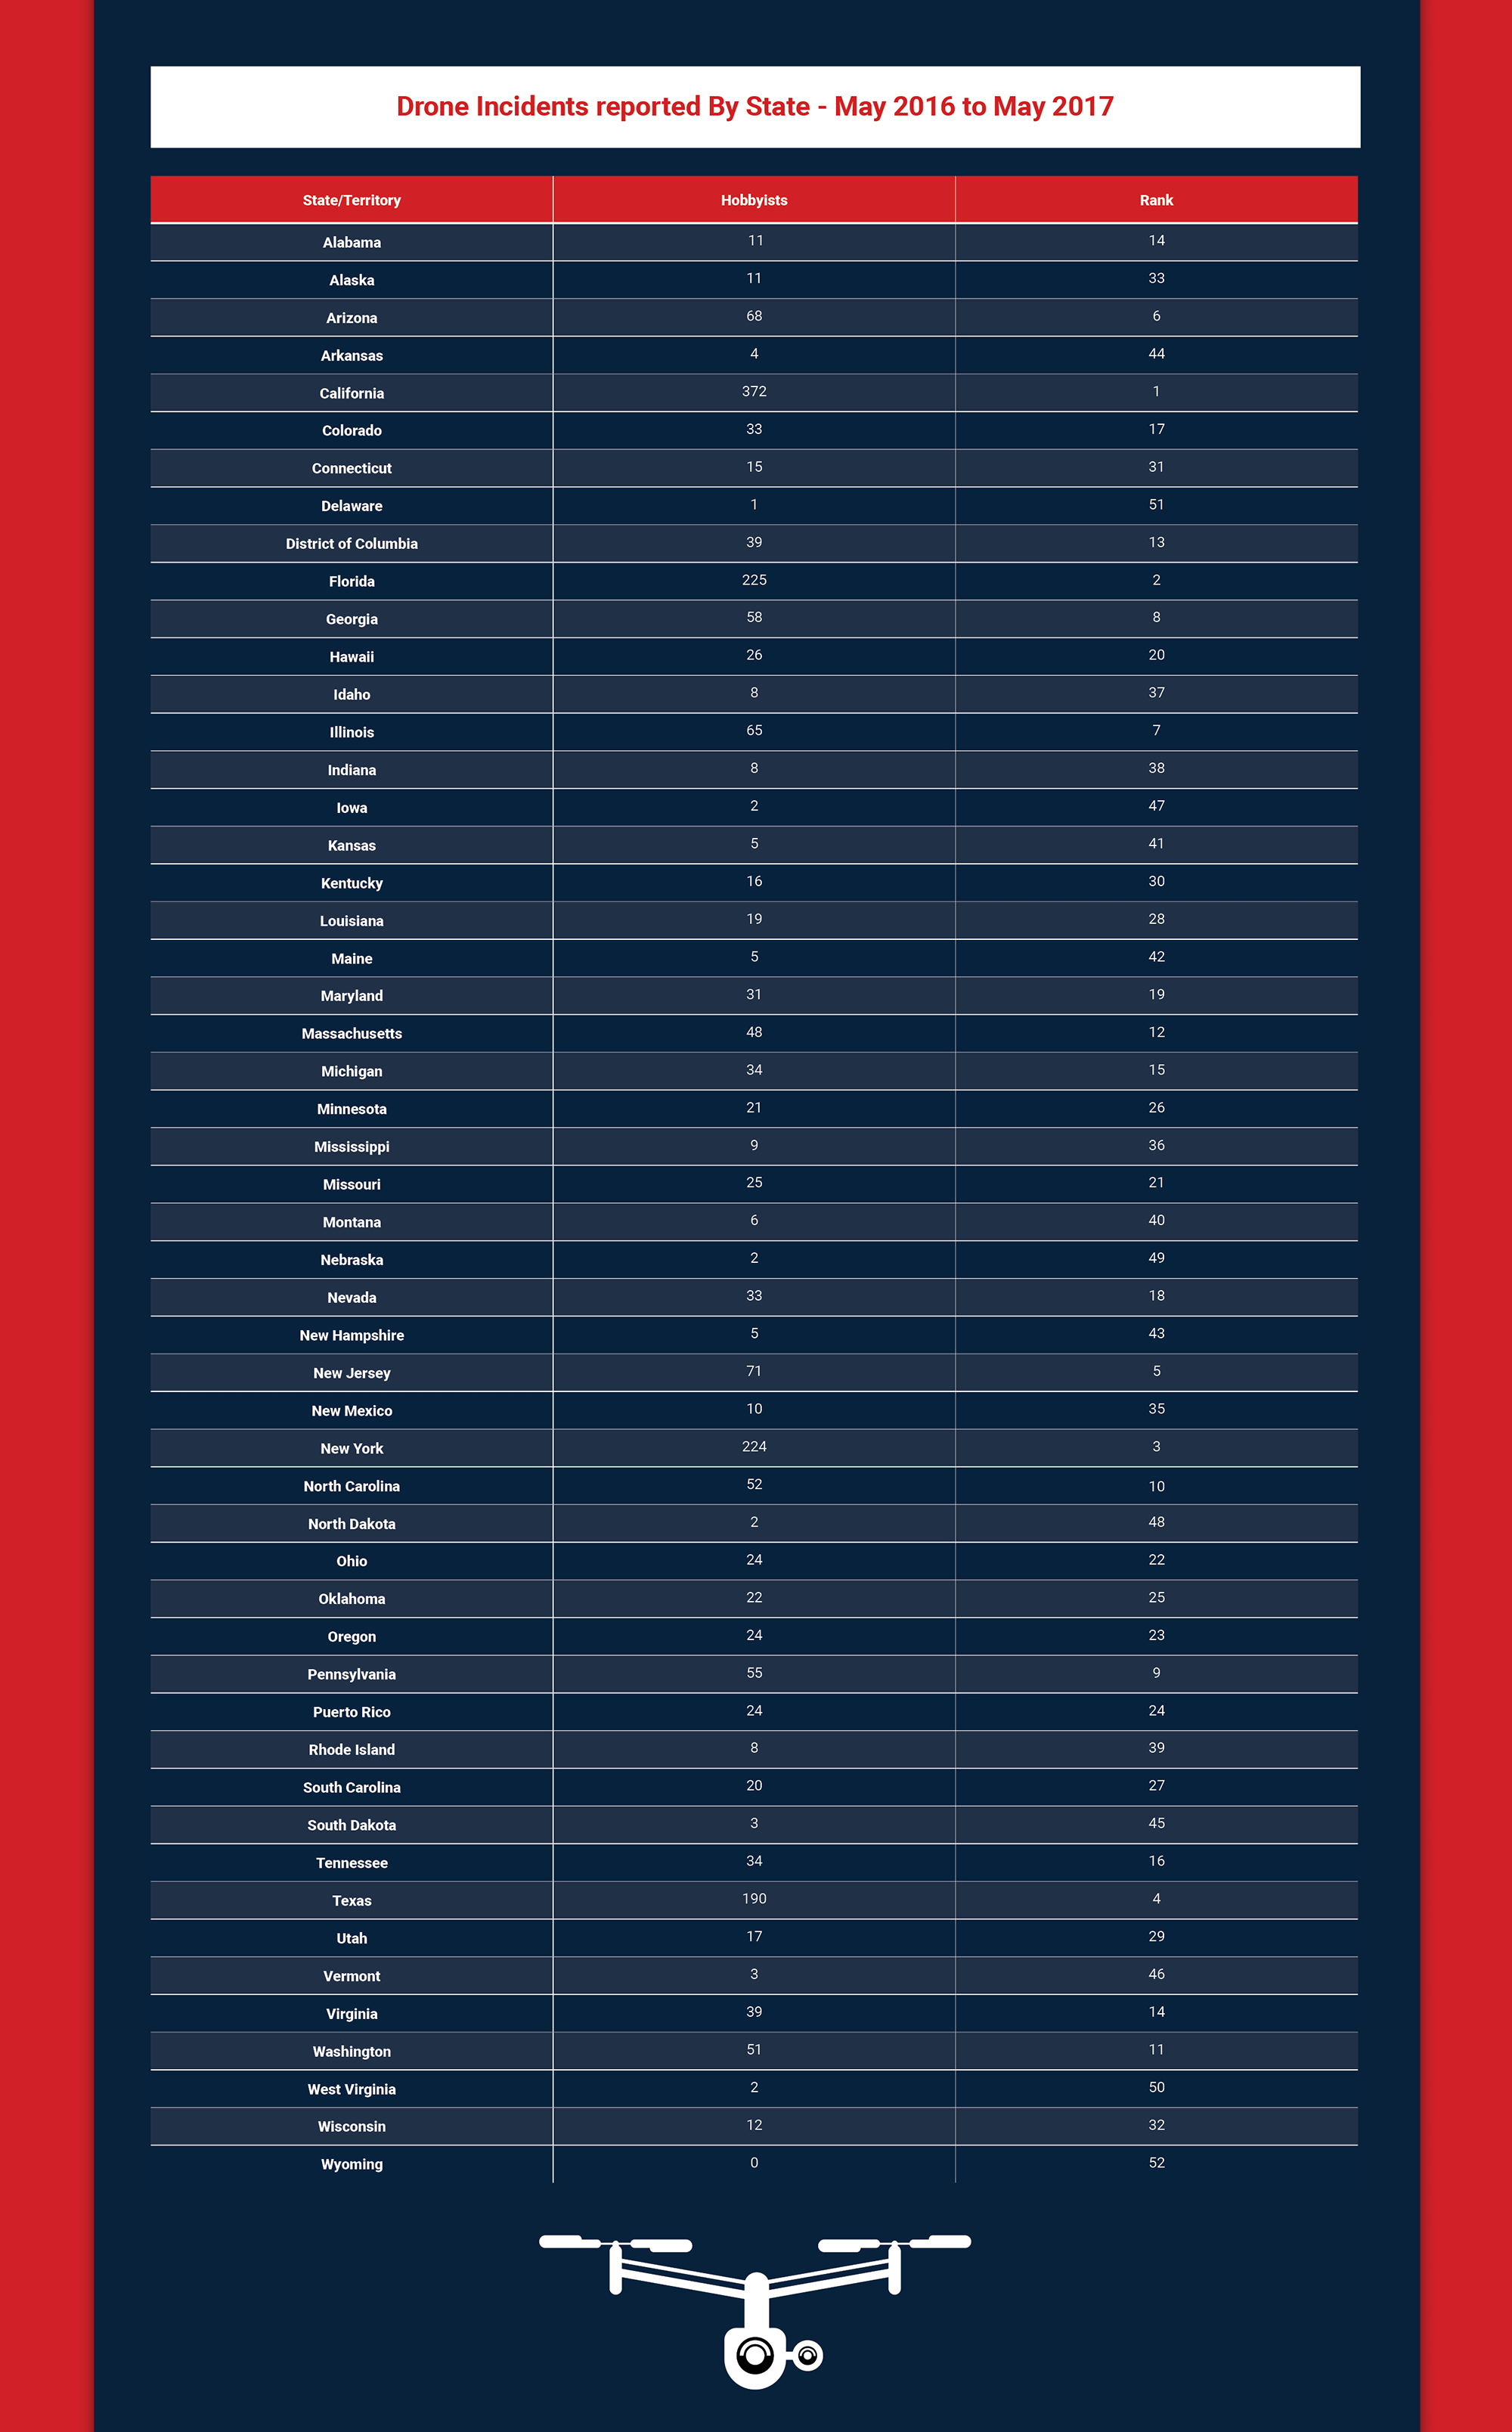 drone incidents reported by state - What's Really Happening with Drones?